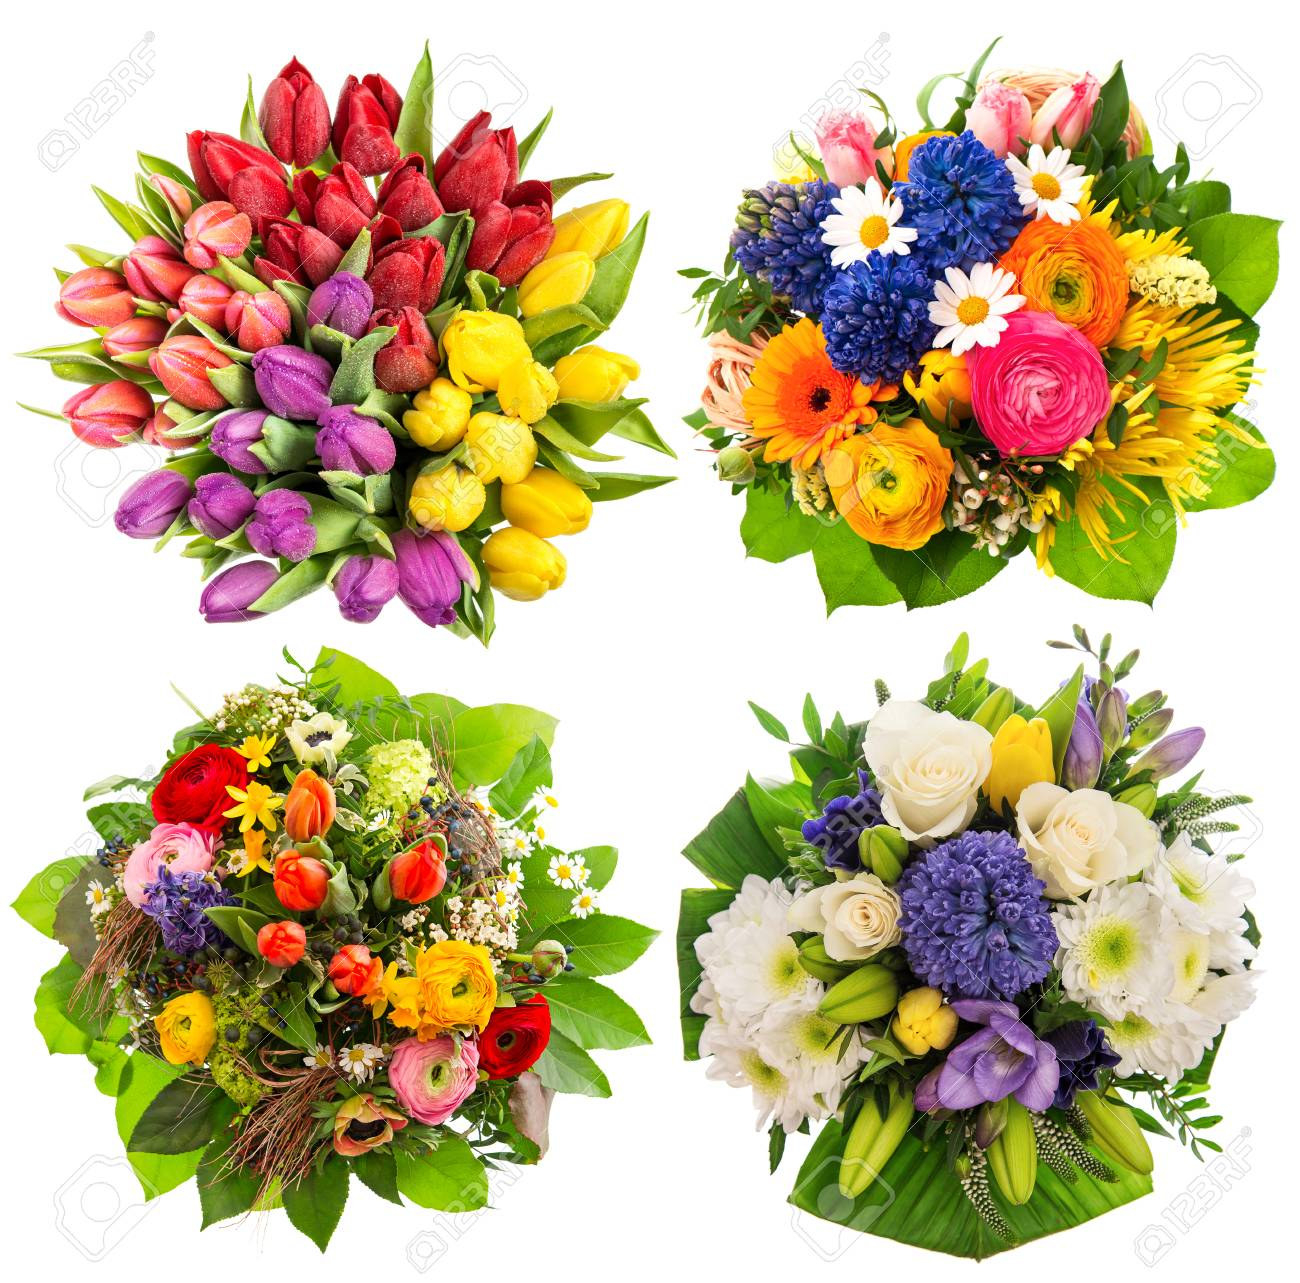 Colorful Flower Bouquets For Birthday, Wedding, Mothers Day,.. Stock ...